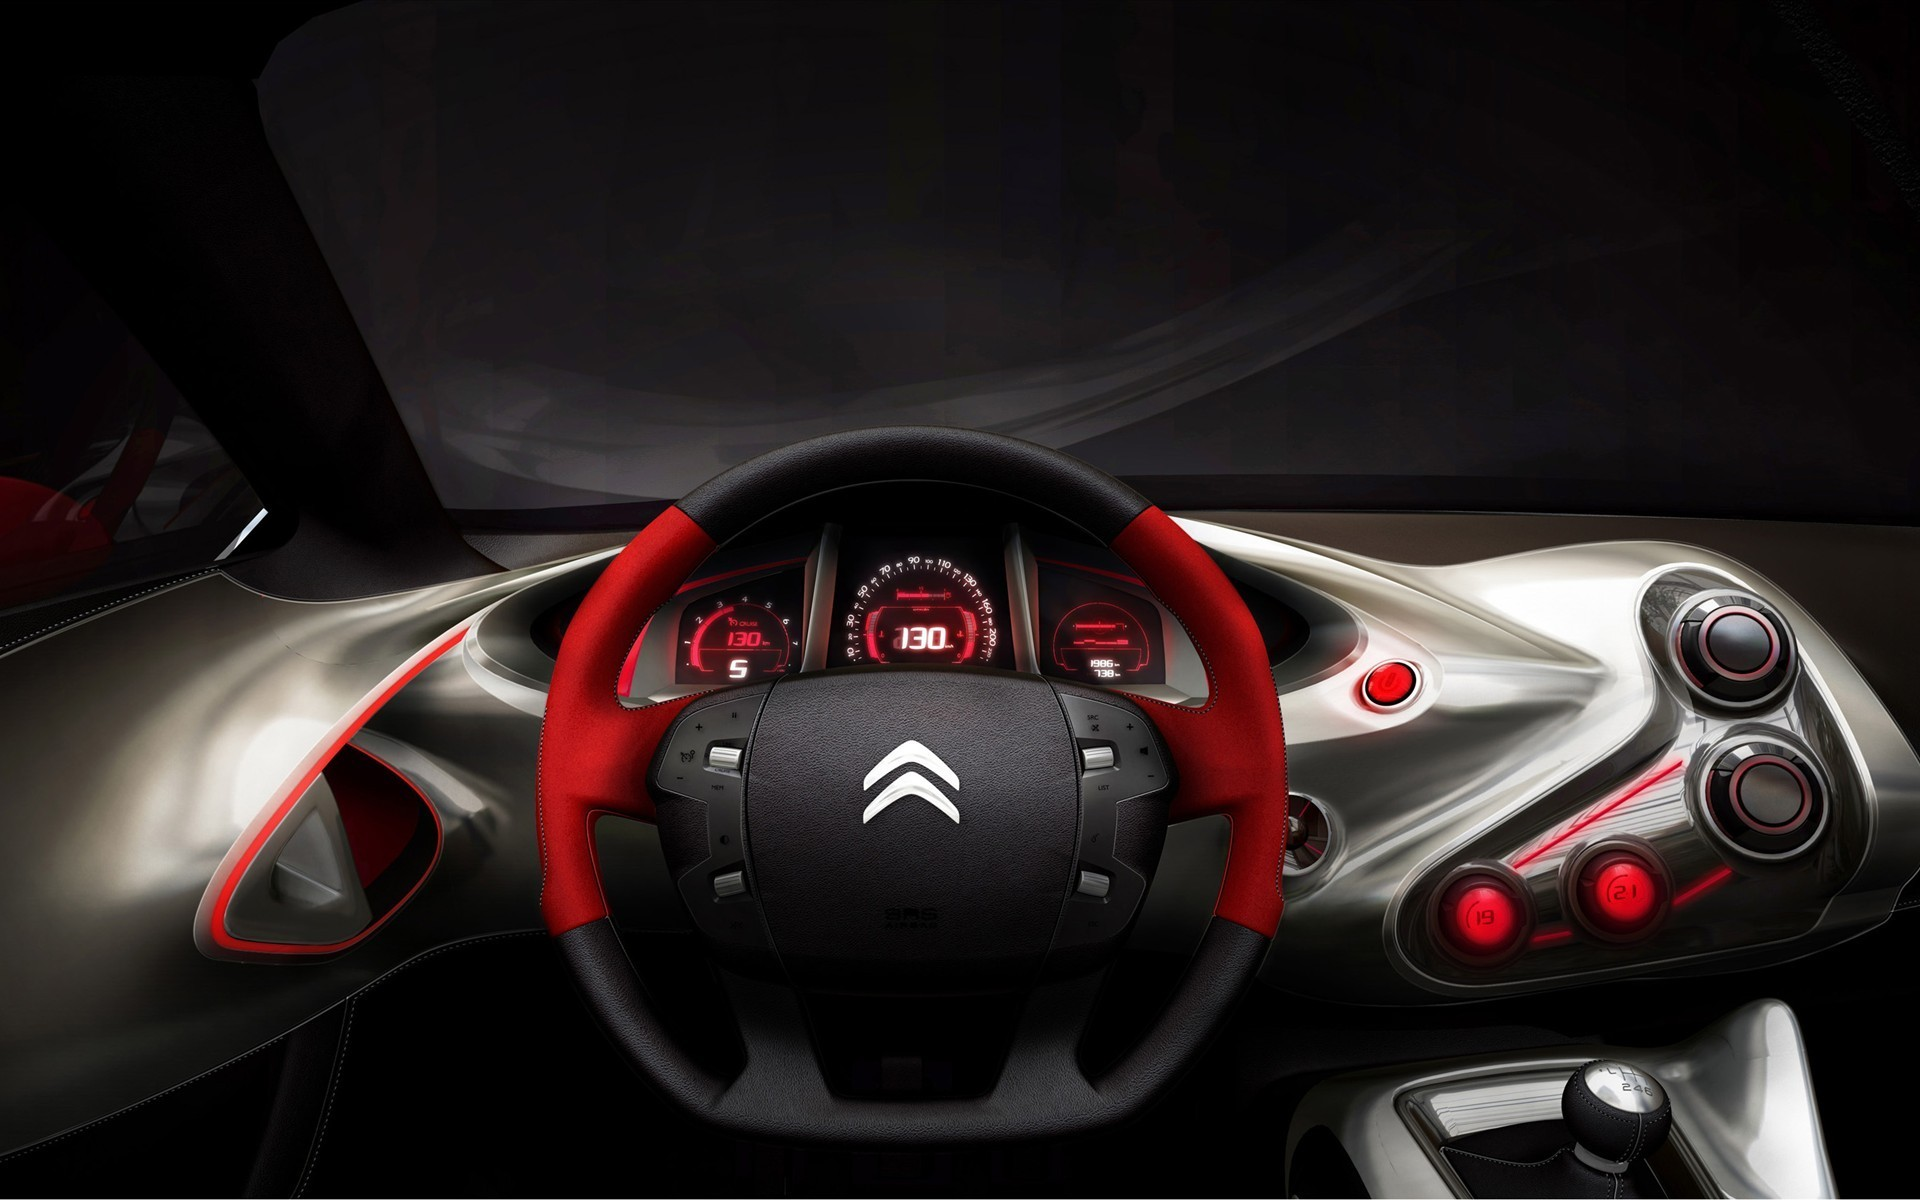 cars concept art dashboards HD Wallpaper